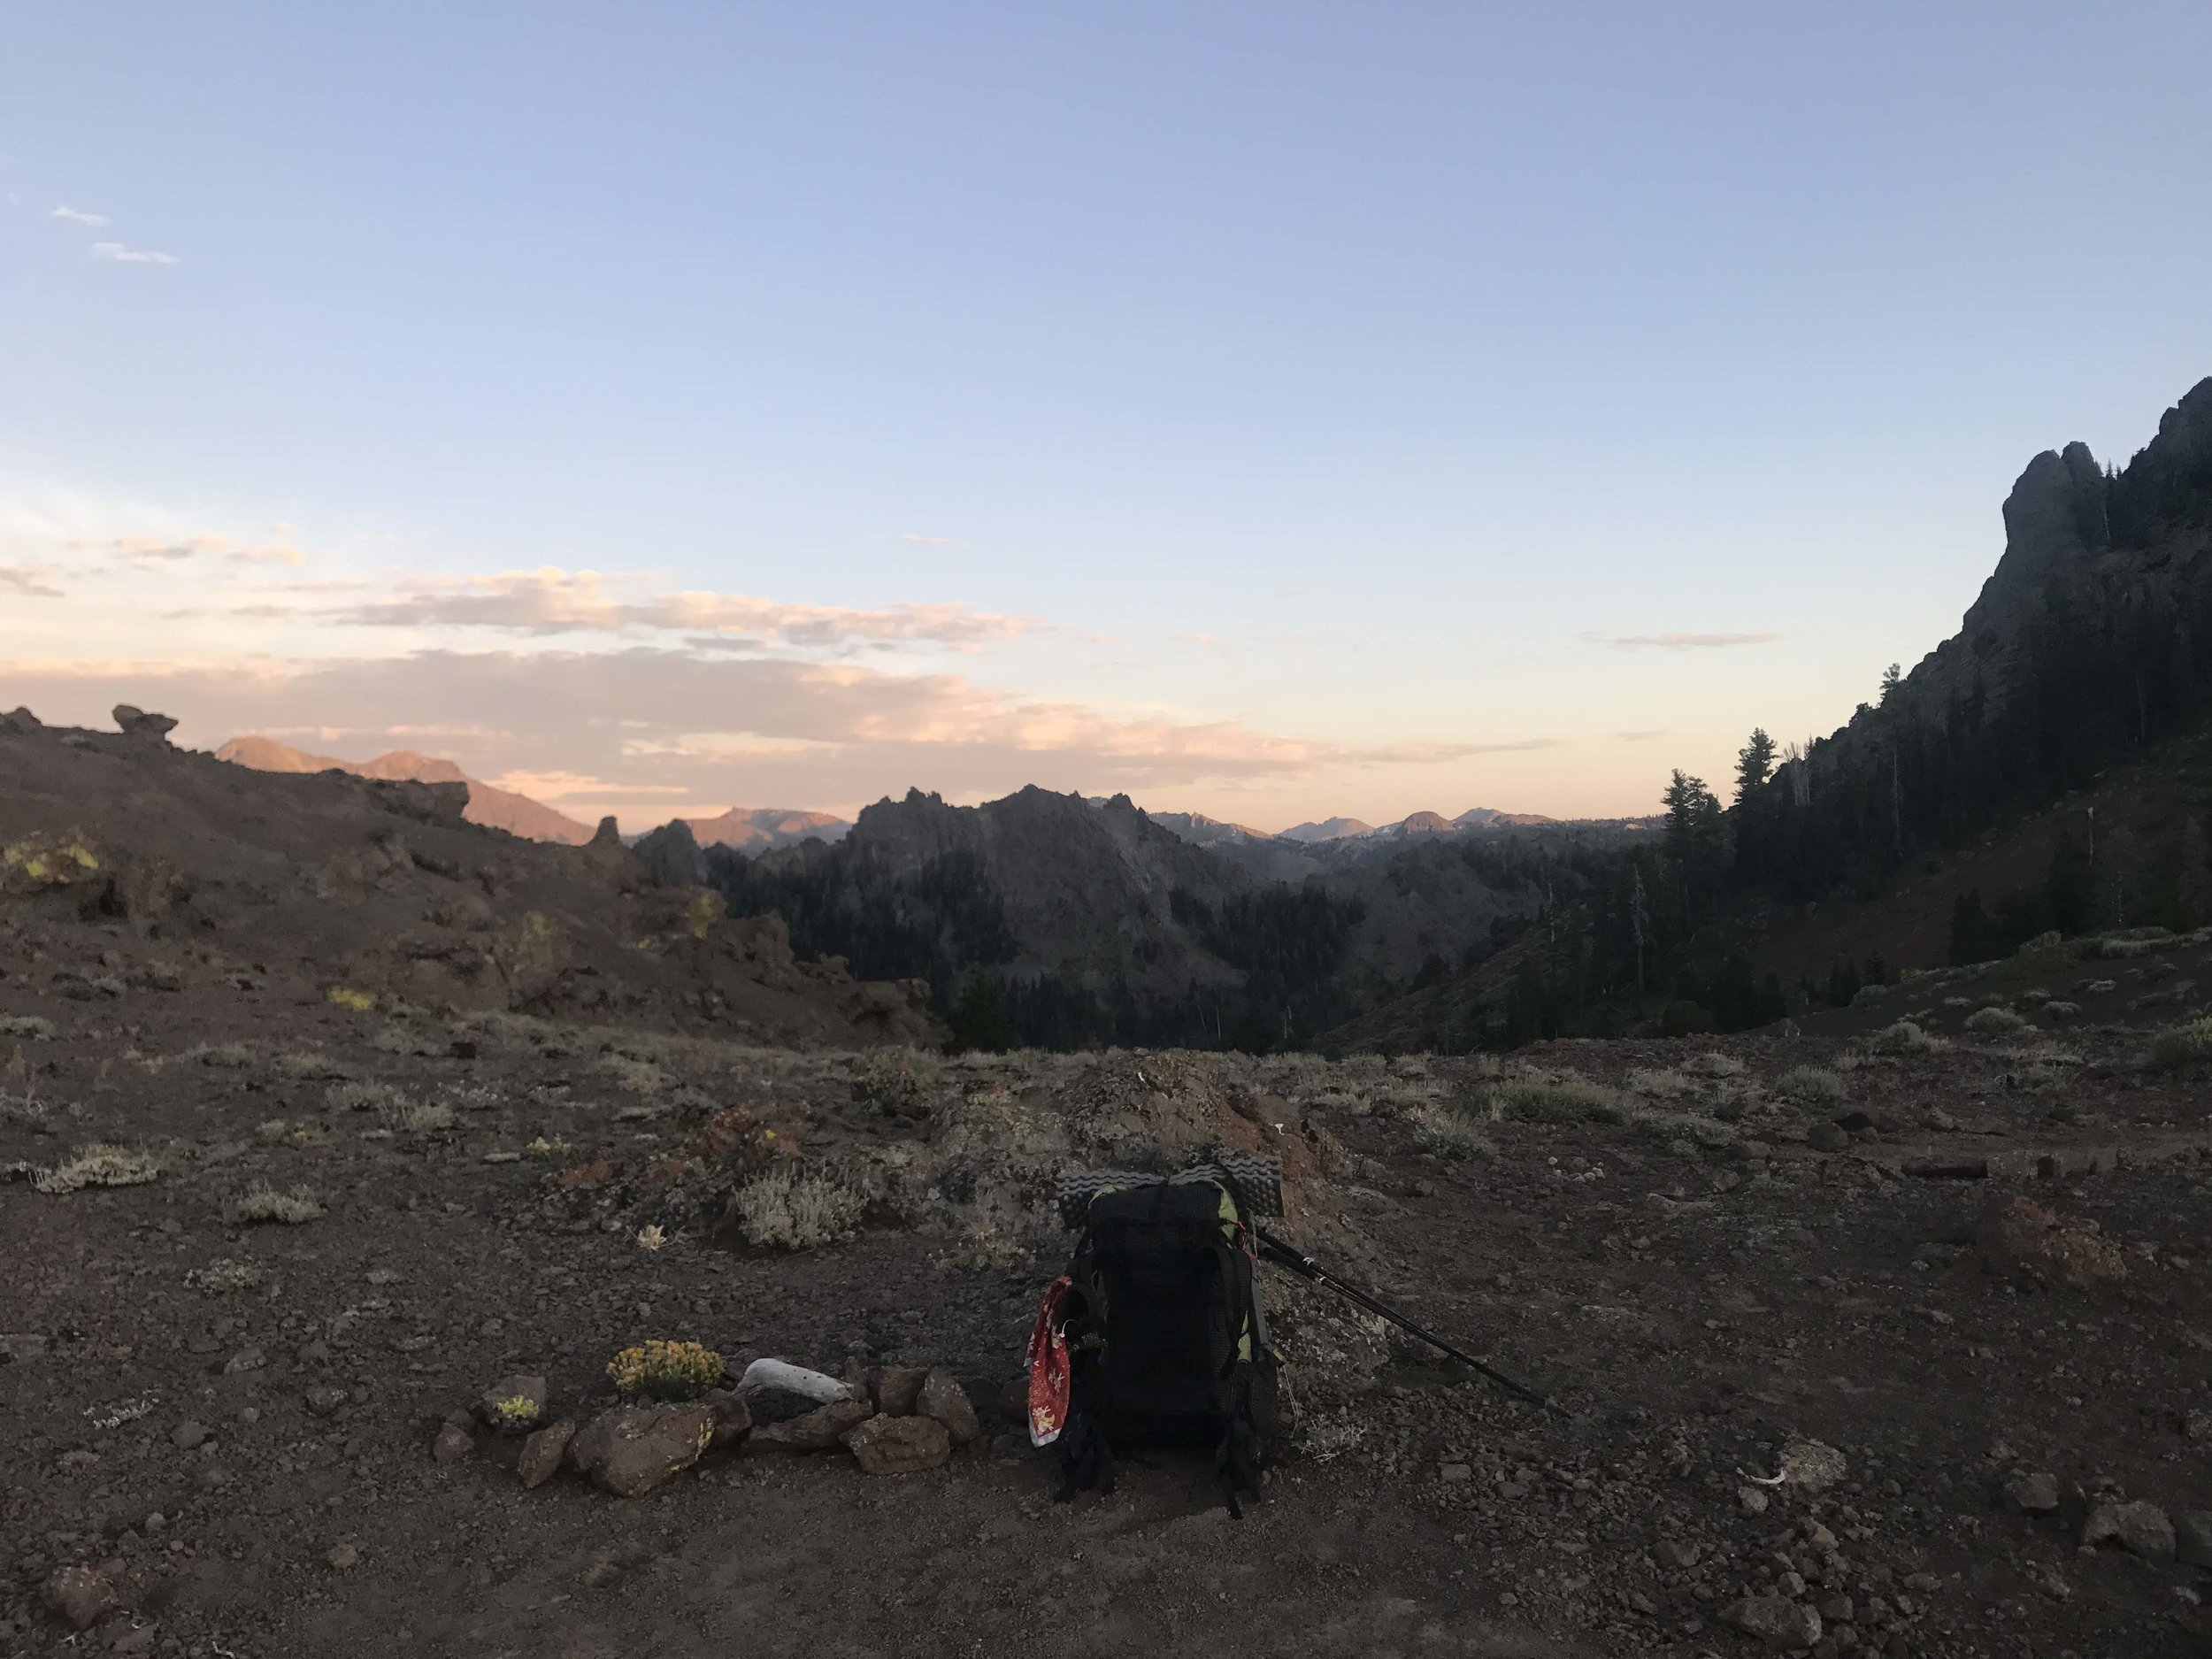 View from my campsite looking south to where I came from…